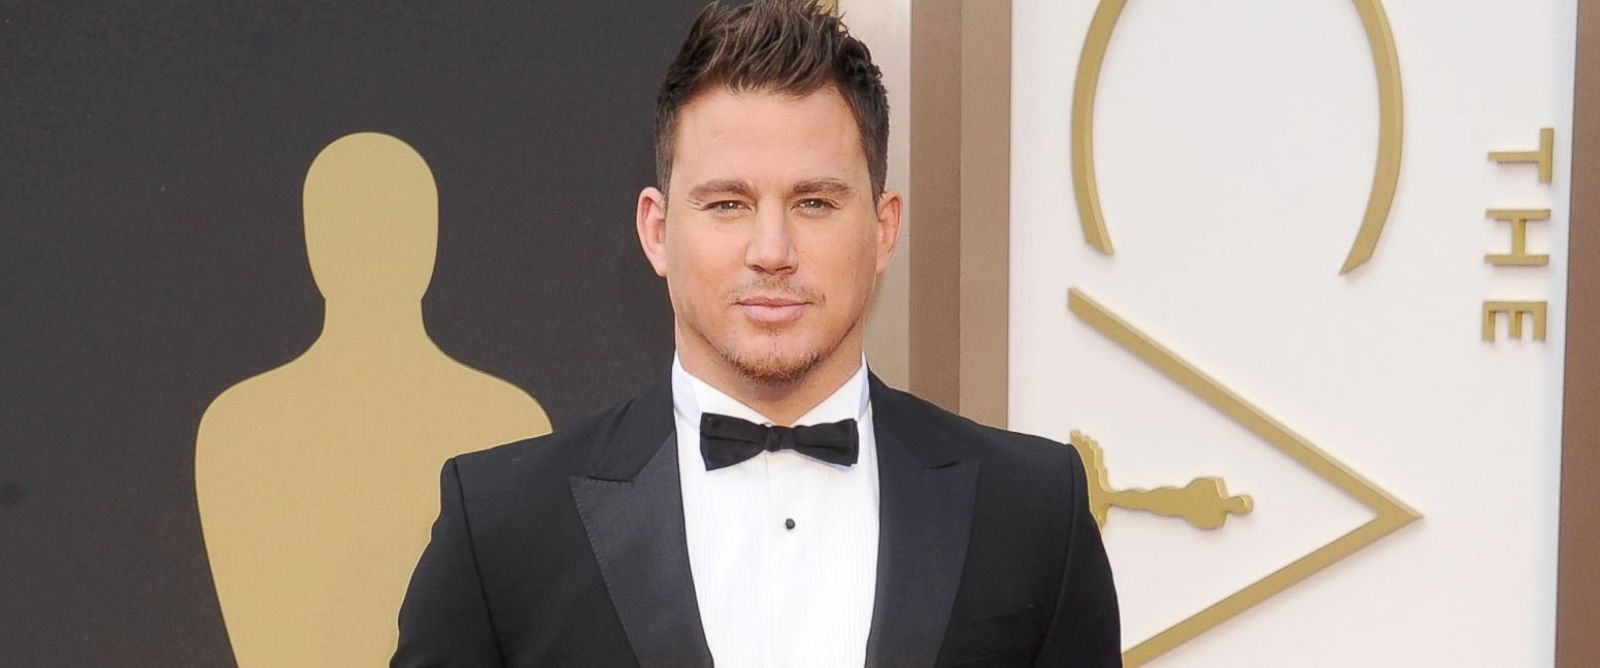 PHOTO: Channing Tatum arrives at the 86th Annual Academy Awards at Hollywood & Highland Center, March 2, 2014, in Hollywood, Calif.